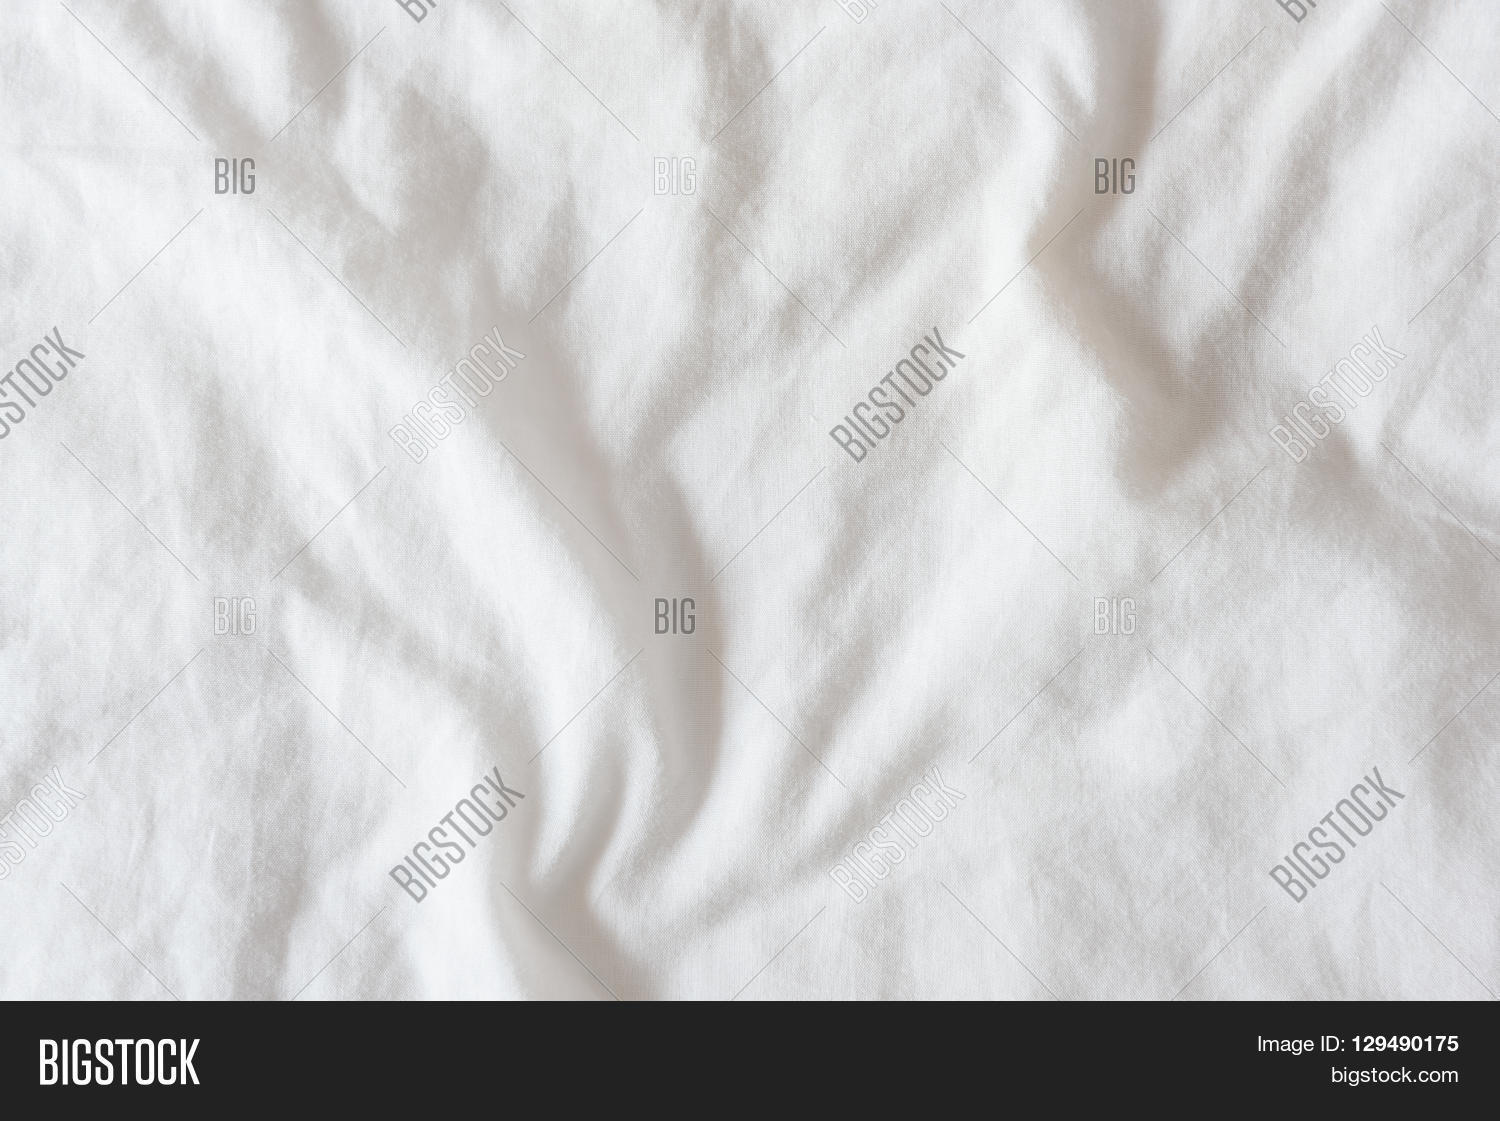 Black and white bed sheets texture - Top View Of Creased Wrinkles On A White Unmade Messy Bed Sheet After Waking